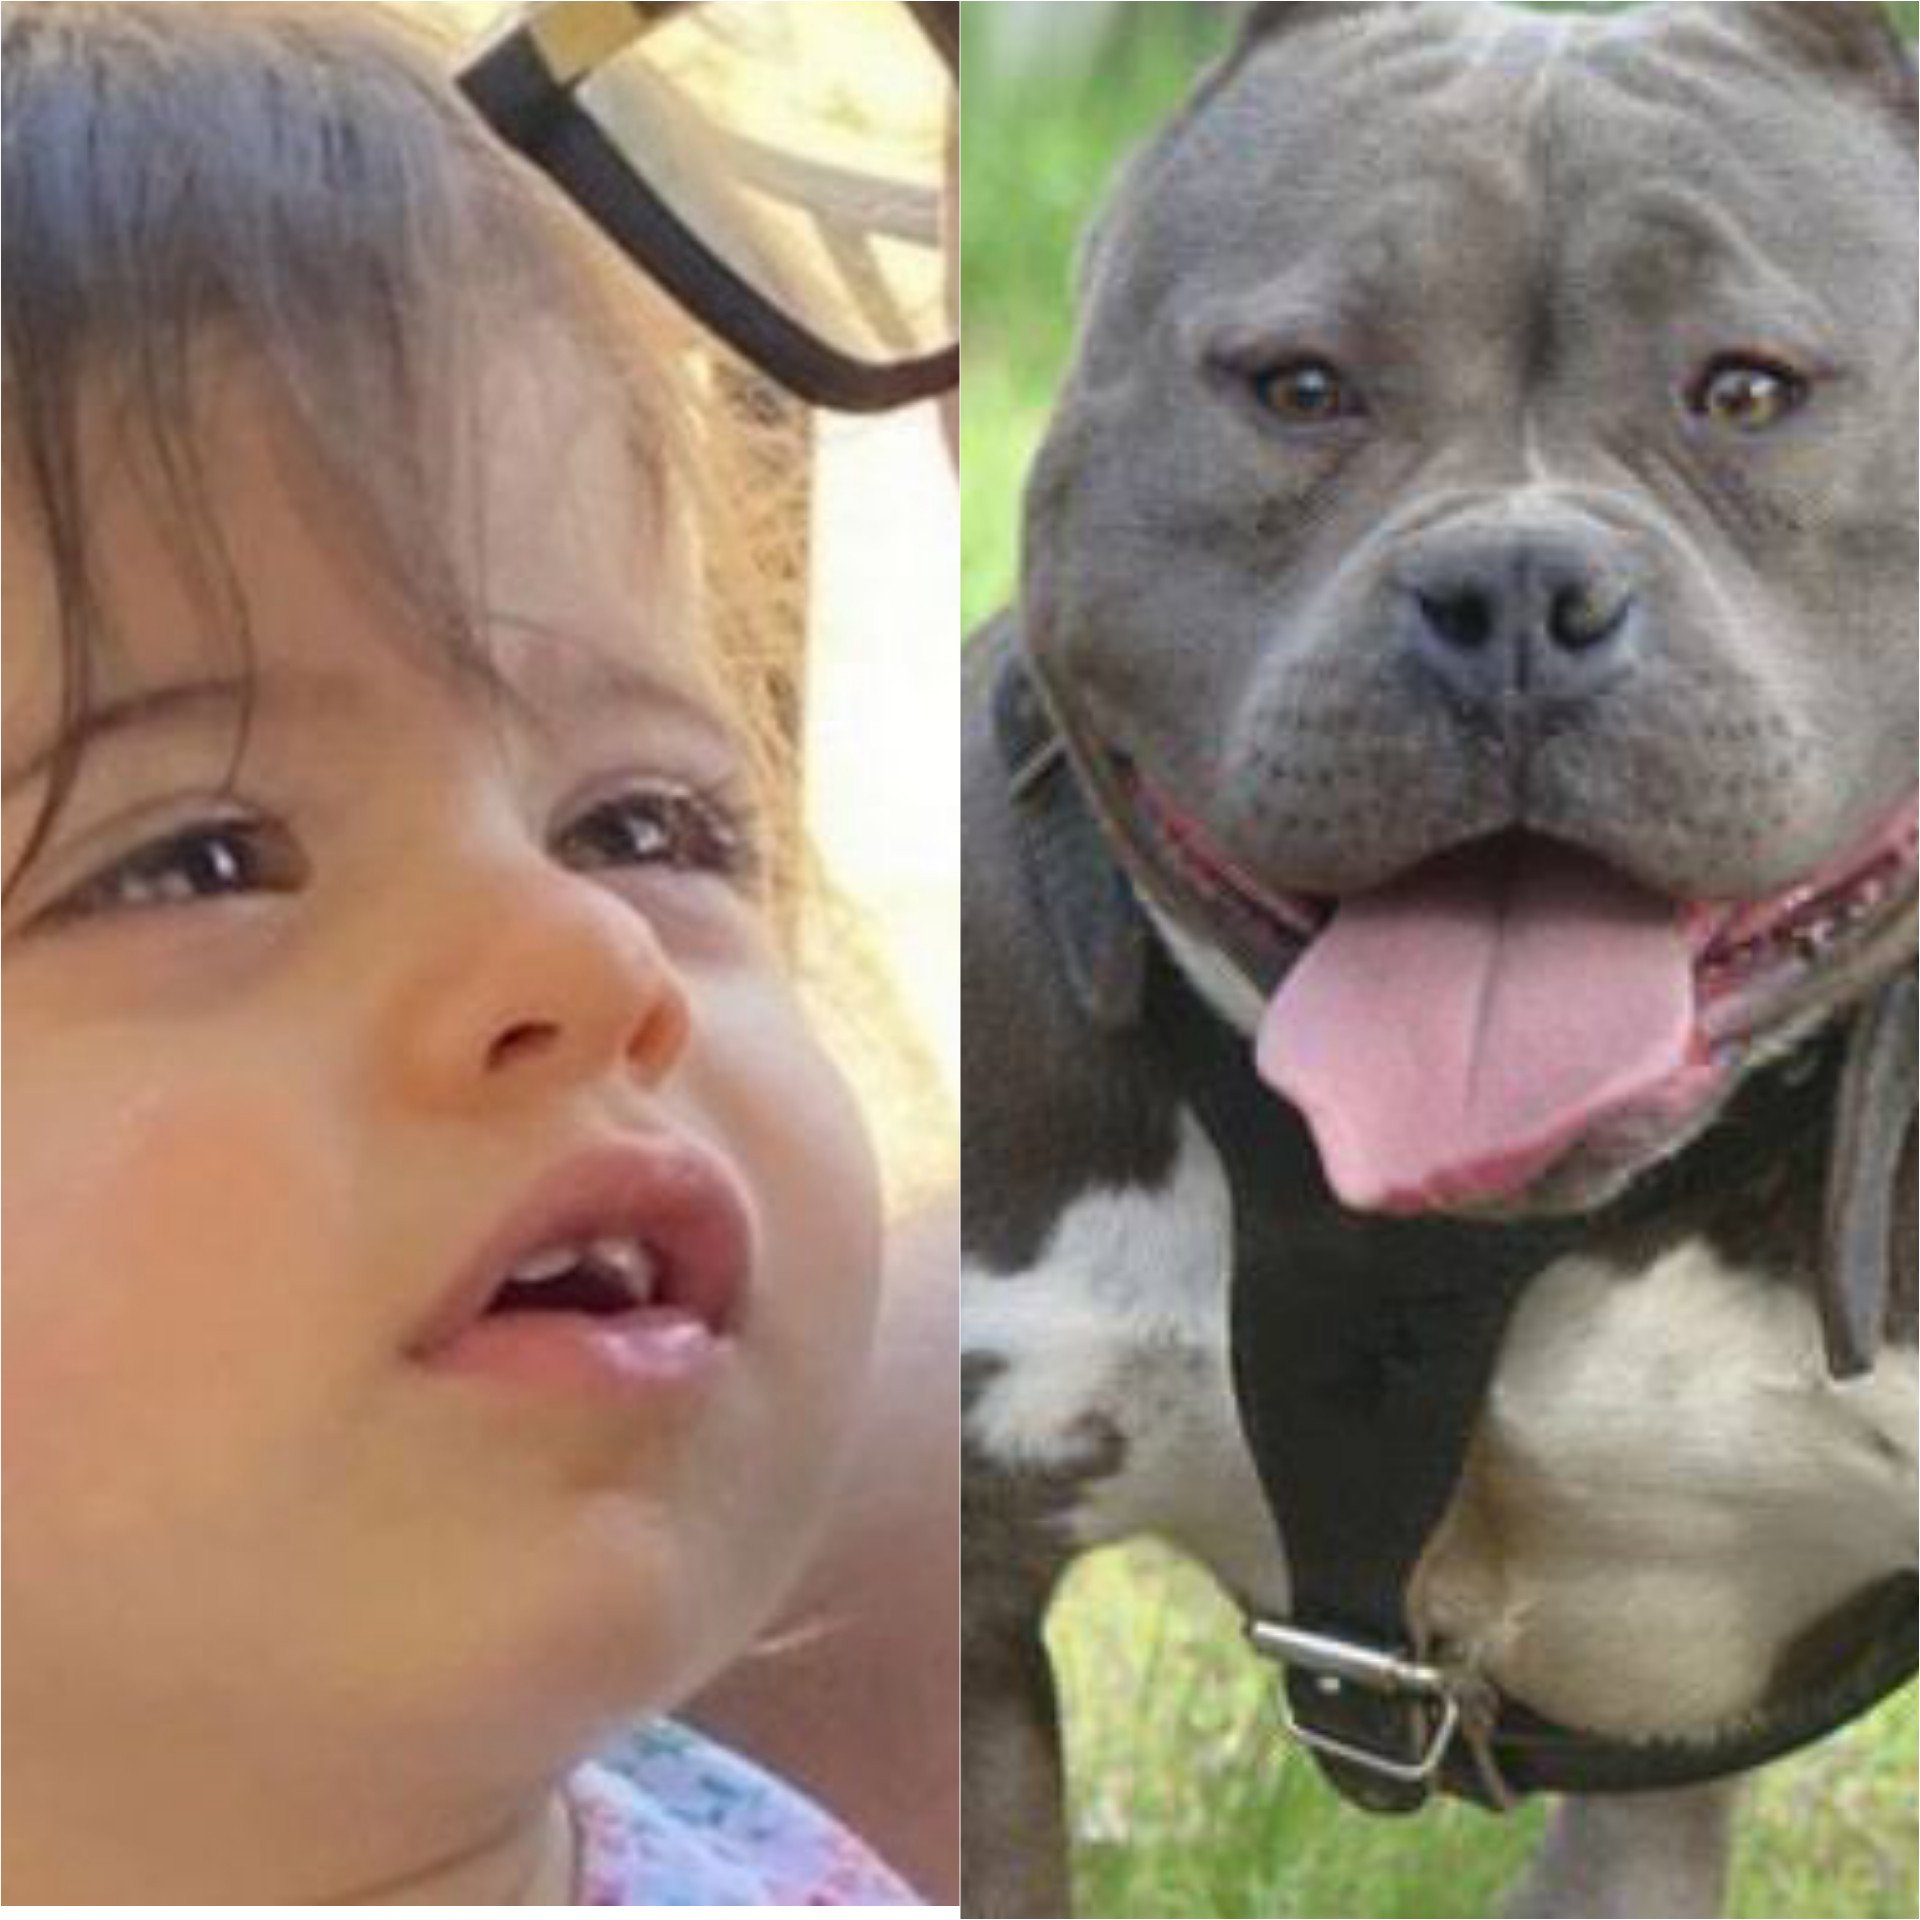 Toddler mauled to death by stray dogs in Chandigarh